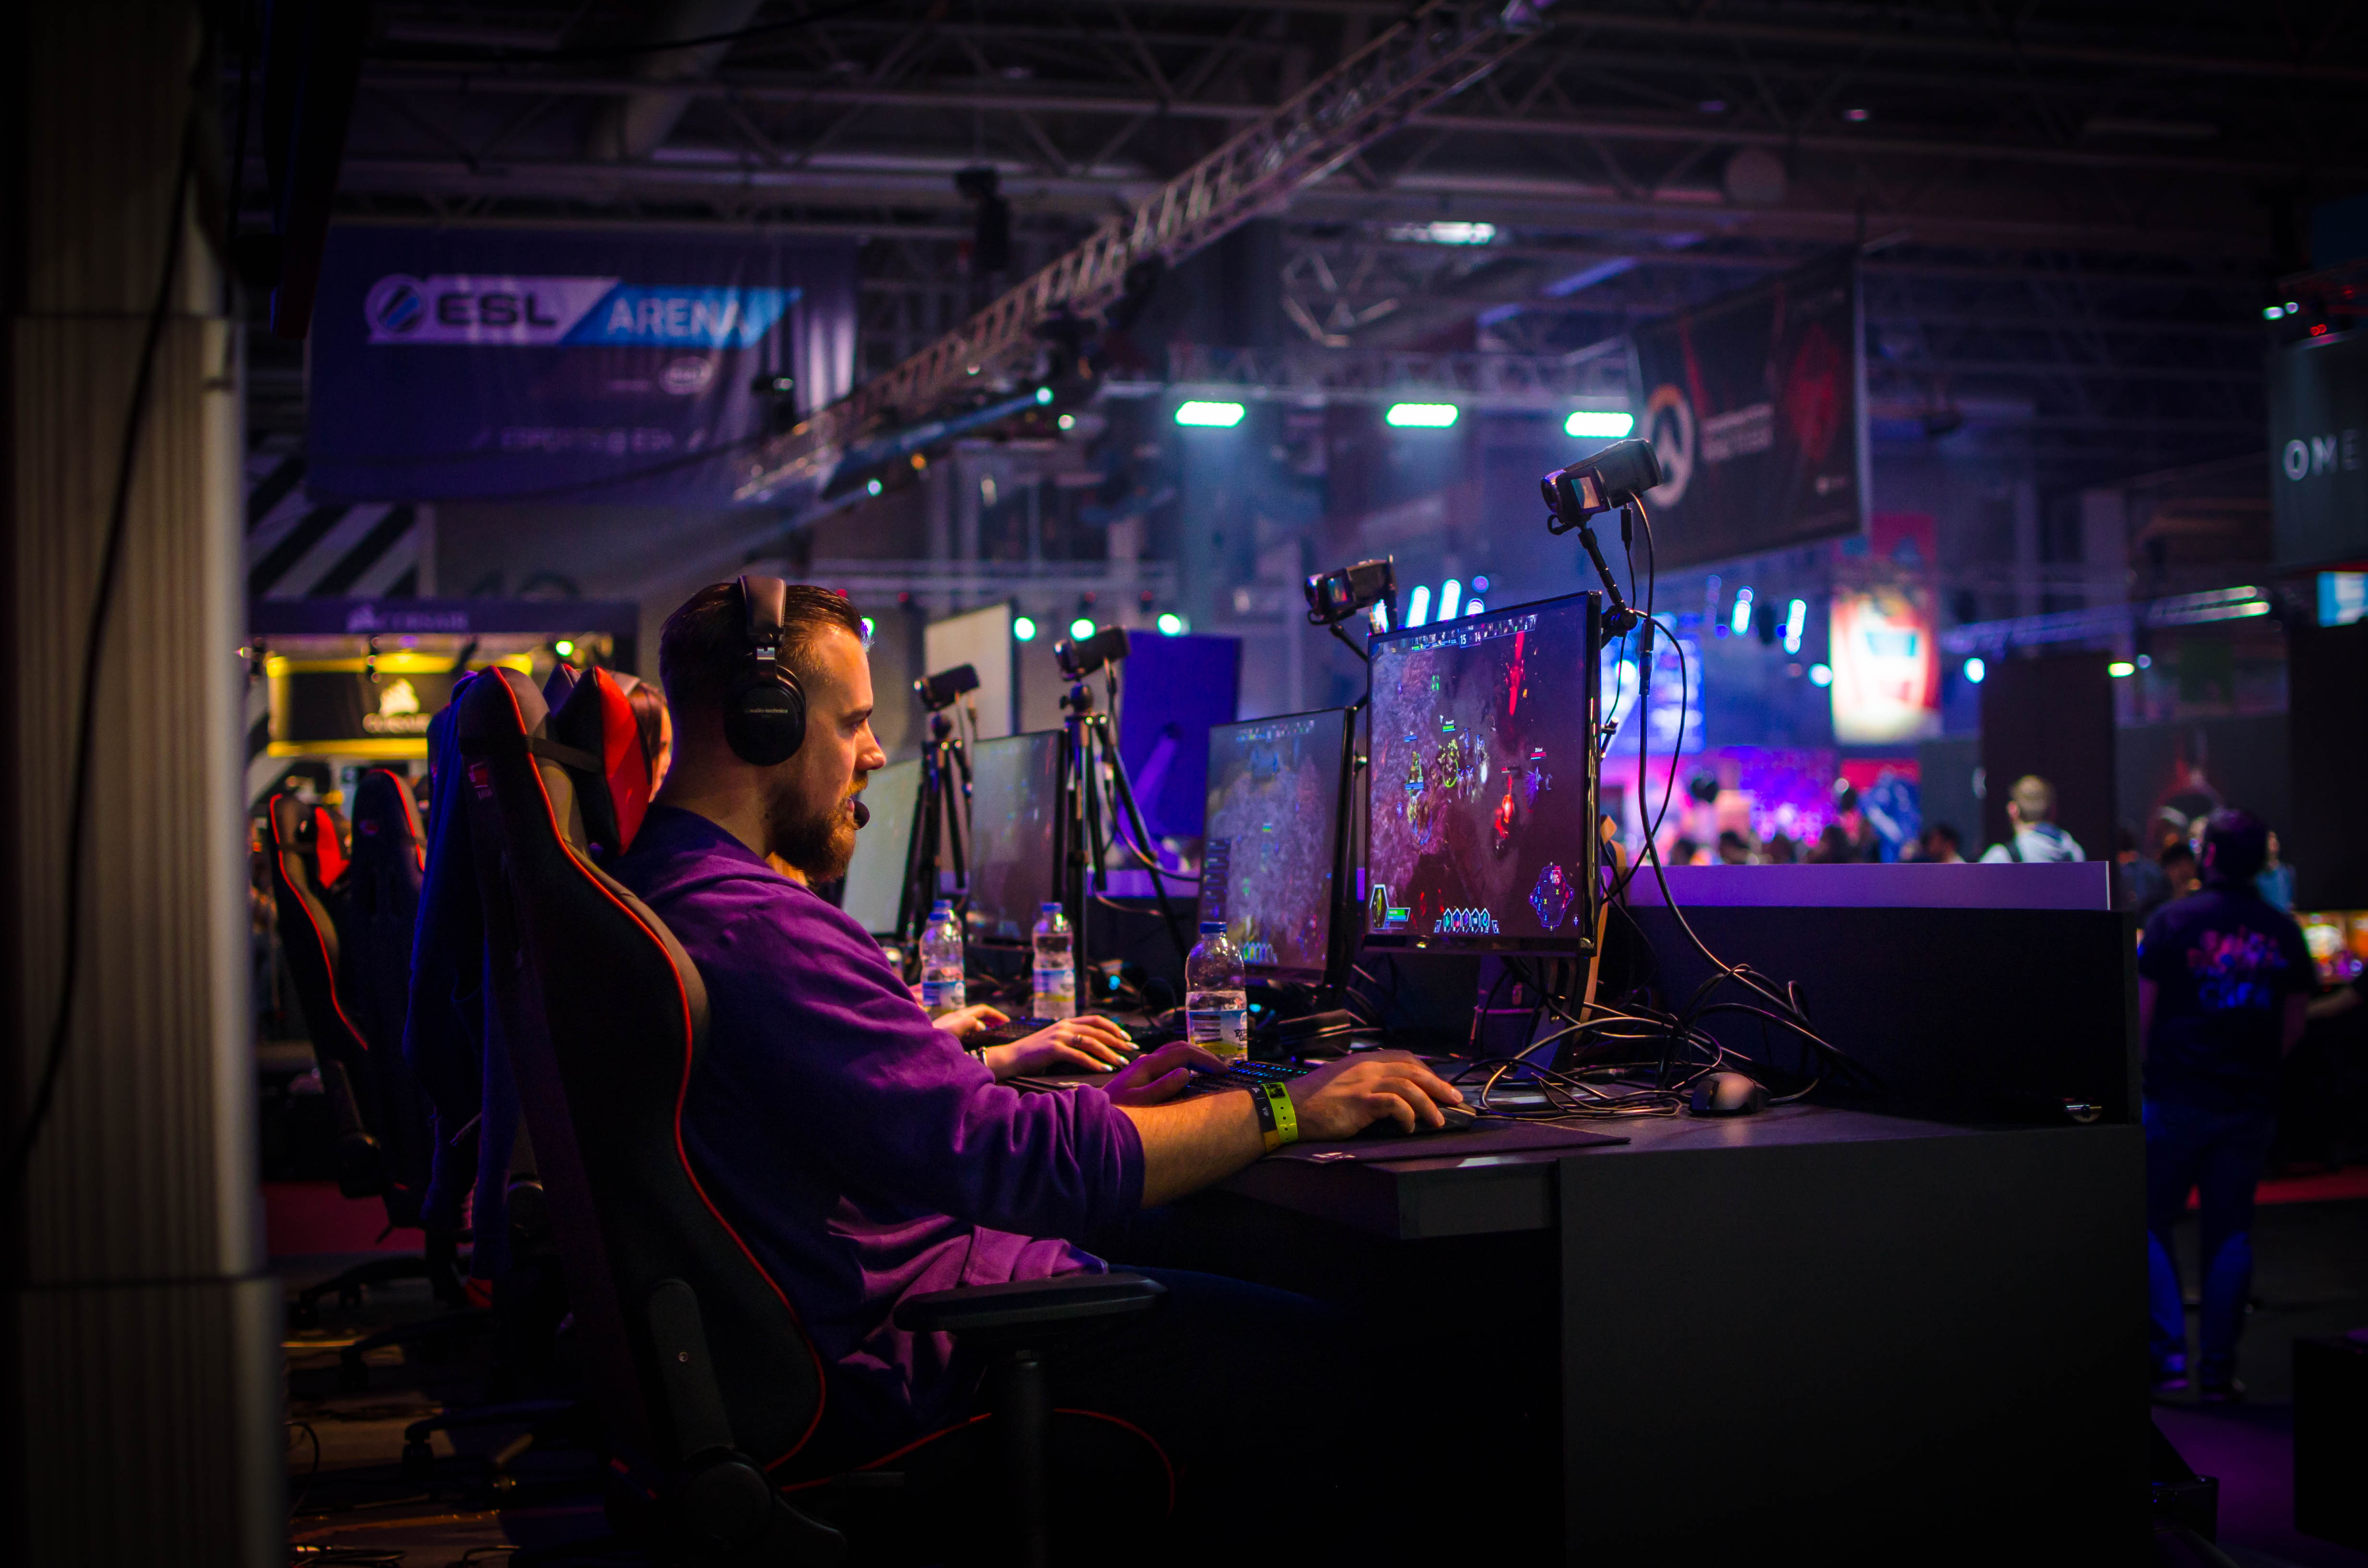 Africa Esports Market Size Status and Forecast 2019 to 2025